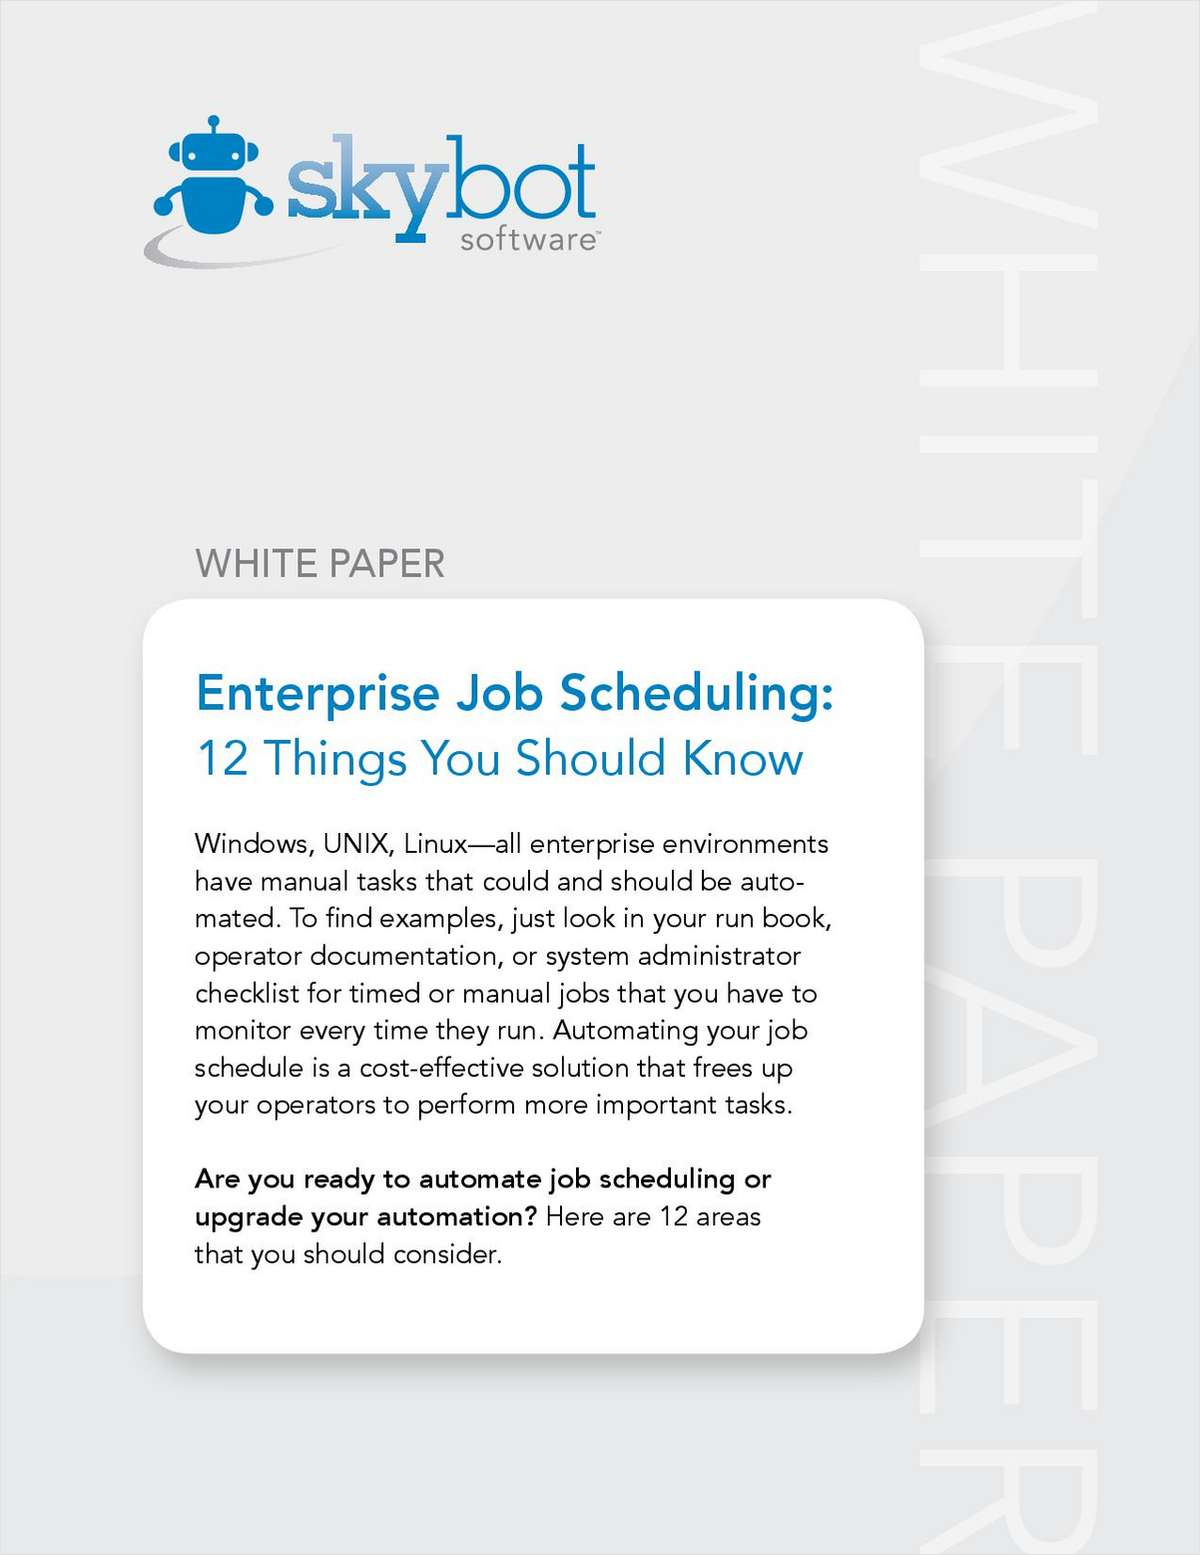 Enterprise job scheduling 12 things you should know free skybot software white paper